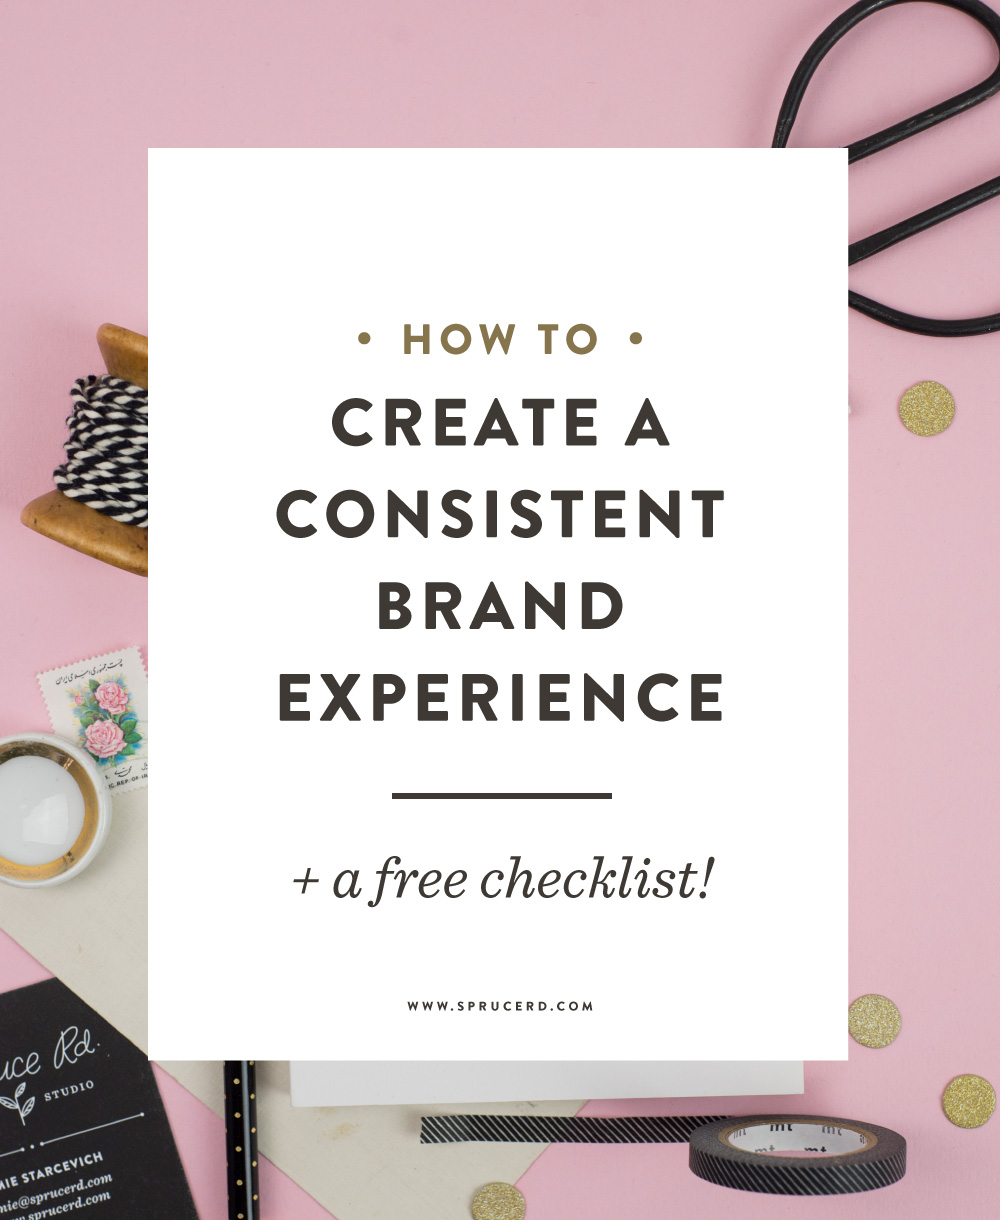 How to create a consistent brand experience | Spruce Rd.